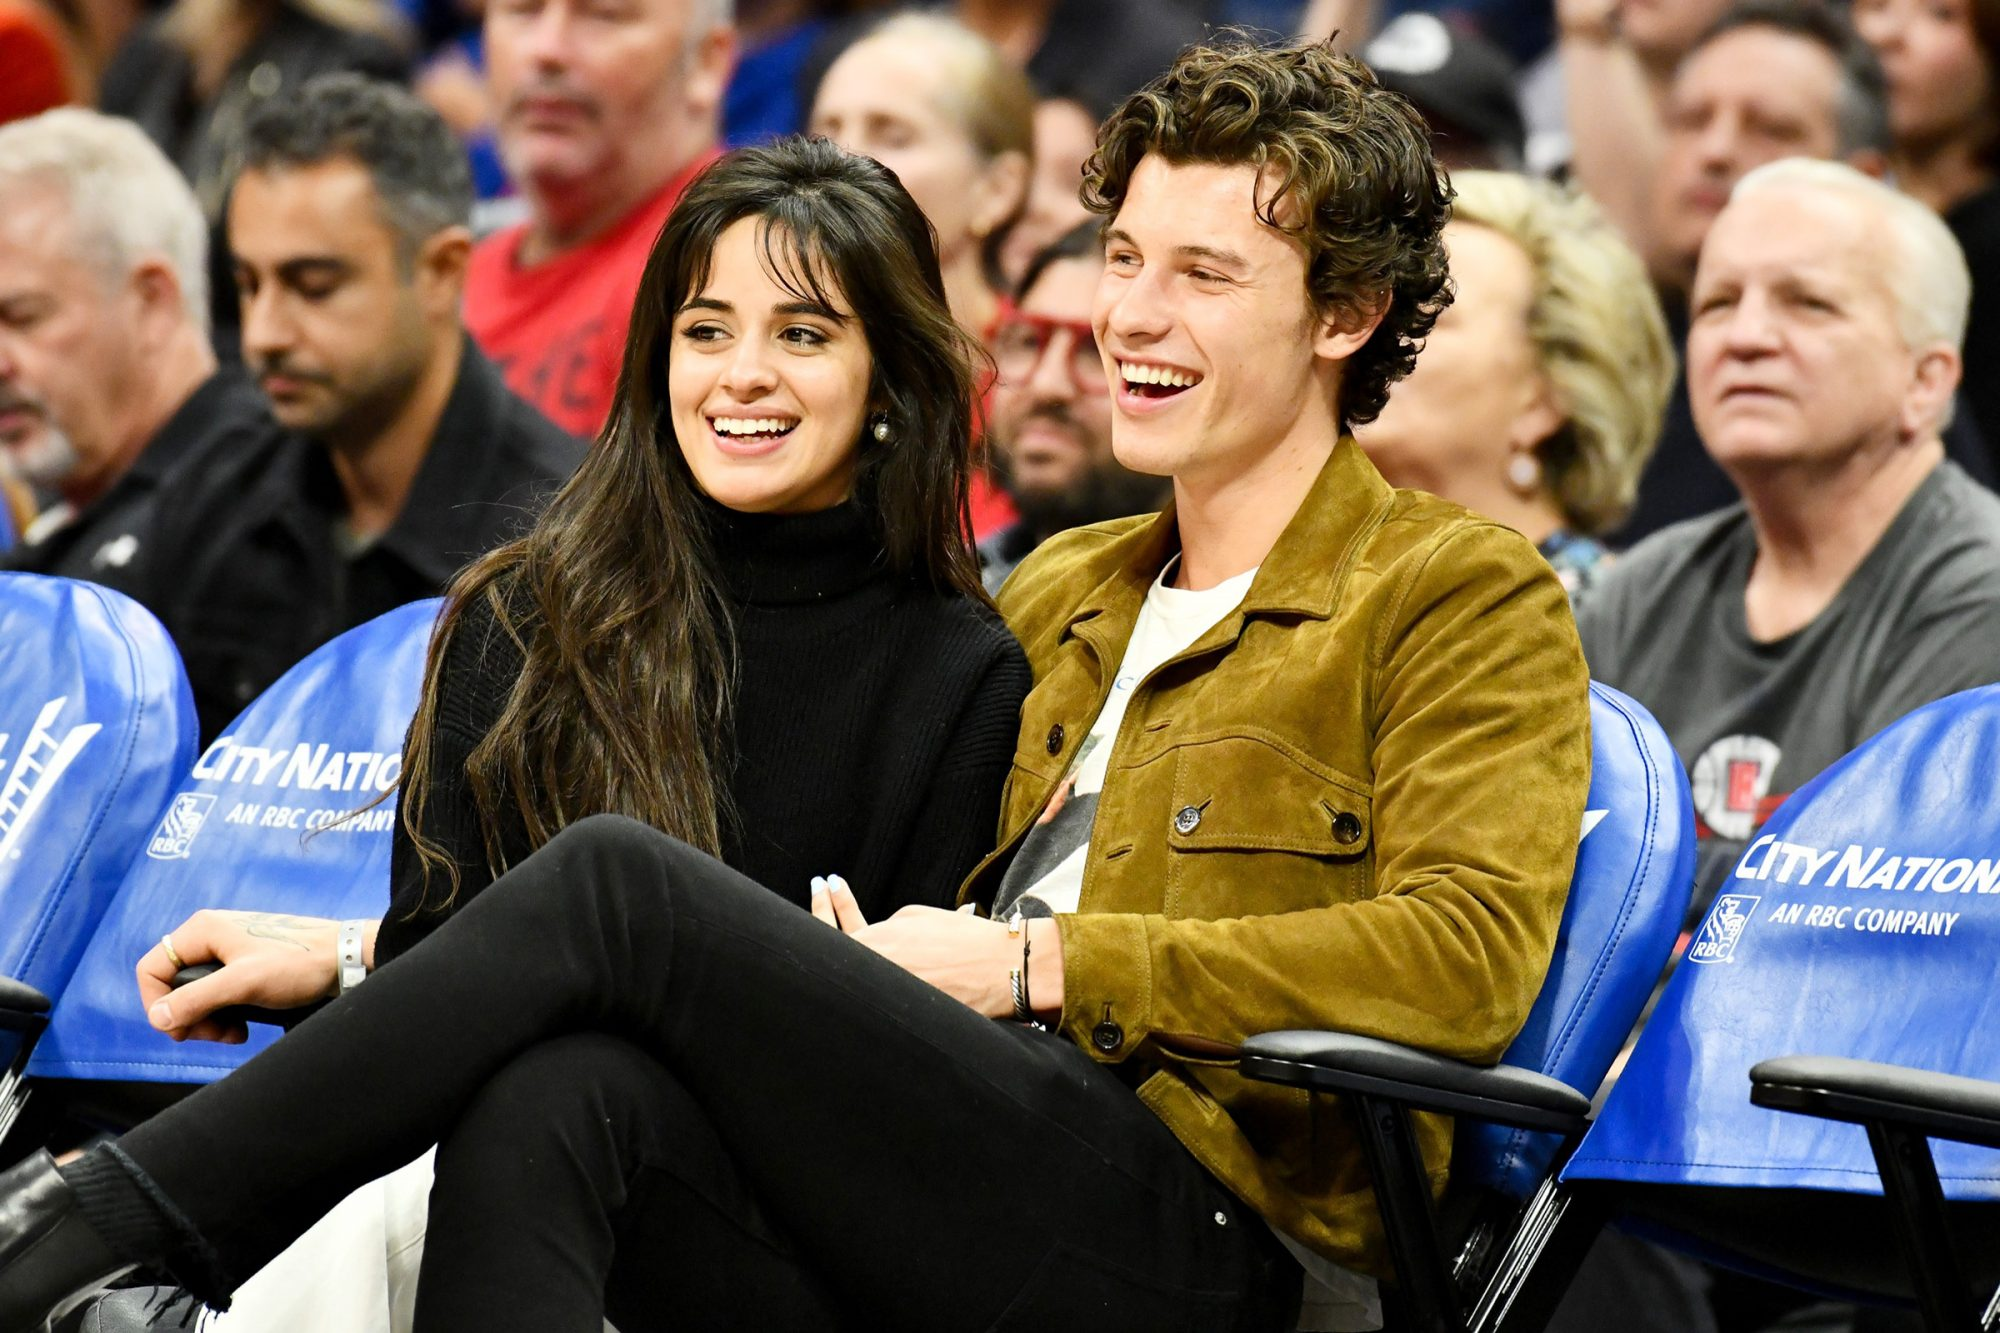 Camila Cabello and Shawn Mendes attend a basketball game between the Los Angeles Clippers and the Toronto Raptors at Staples Center on November 11, 2019 in Los Angeles, California